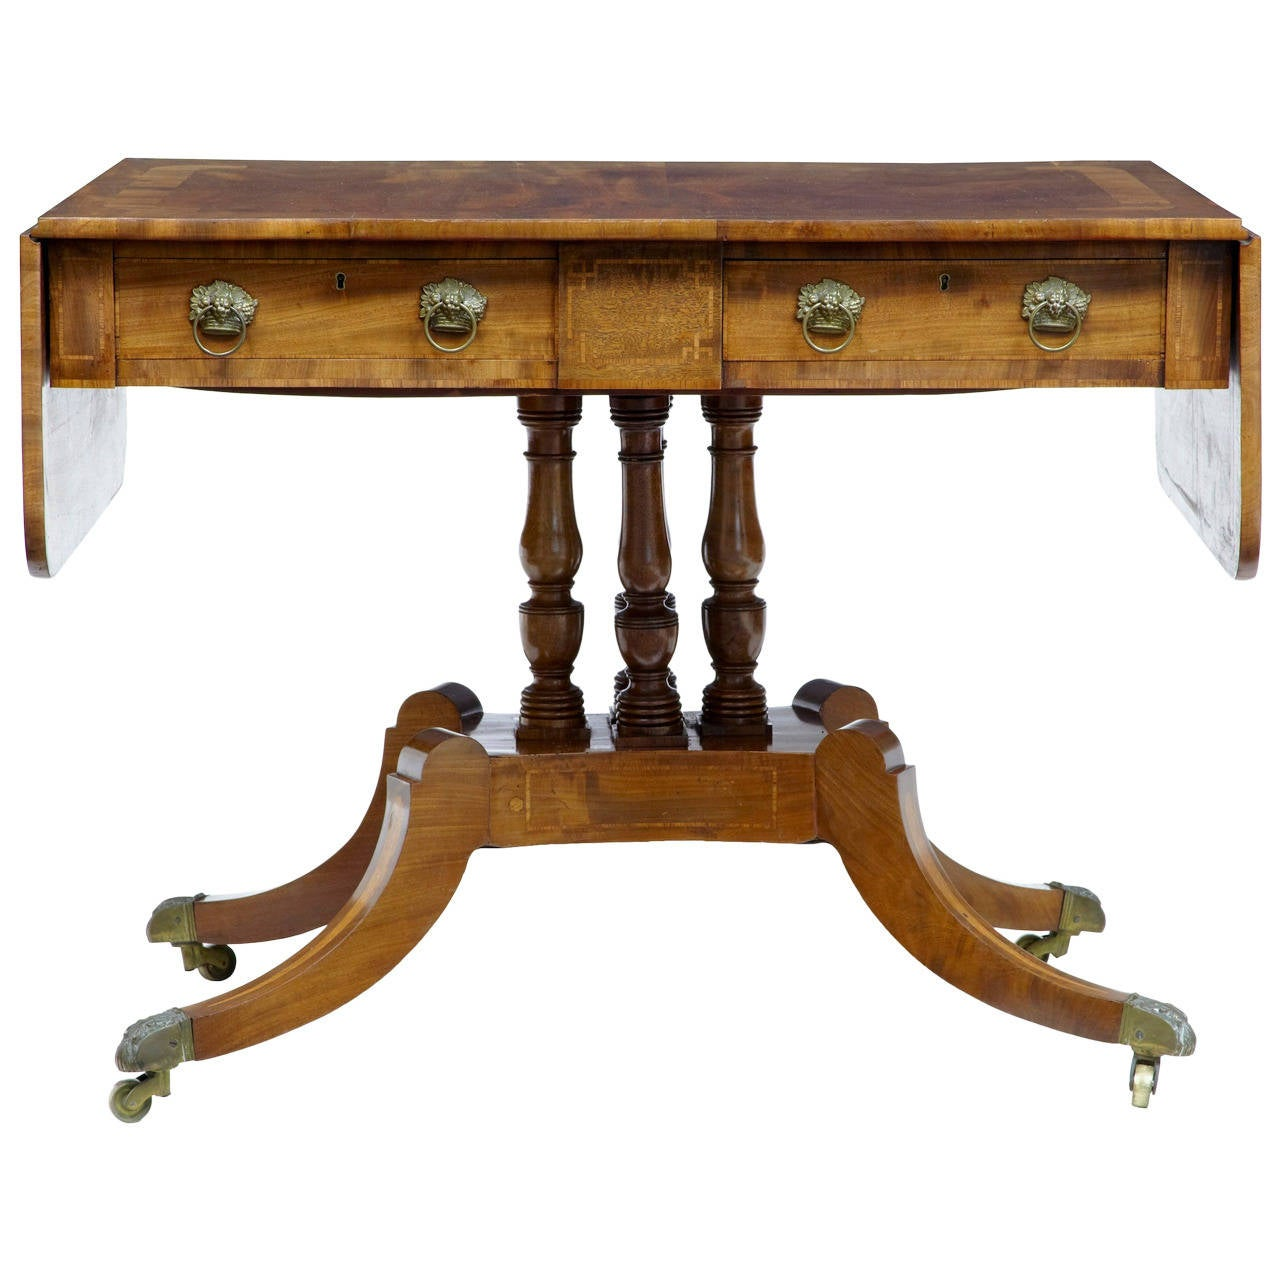 19th Century William IV Inlaid Mahogany Sofa Table For Sale